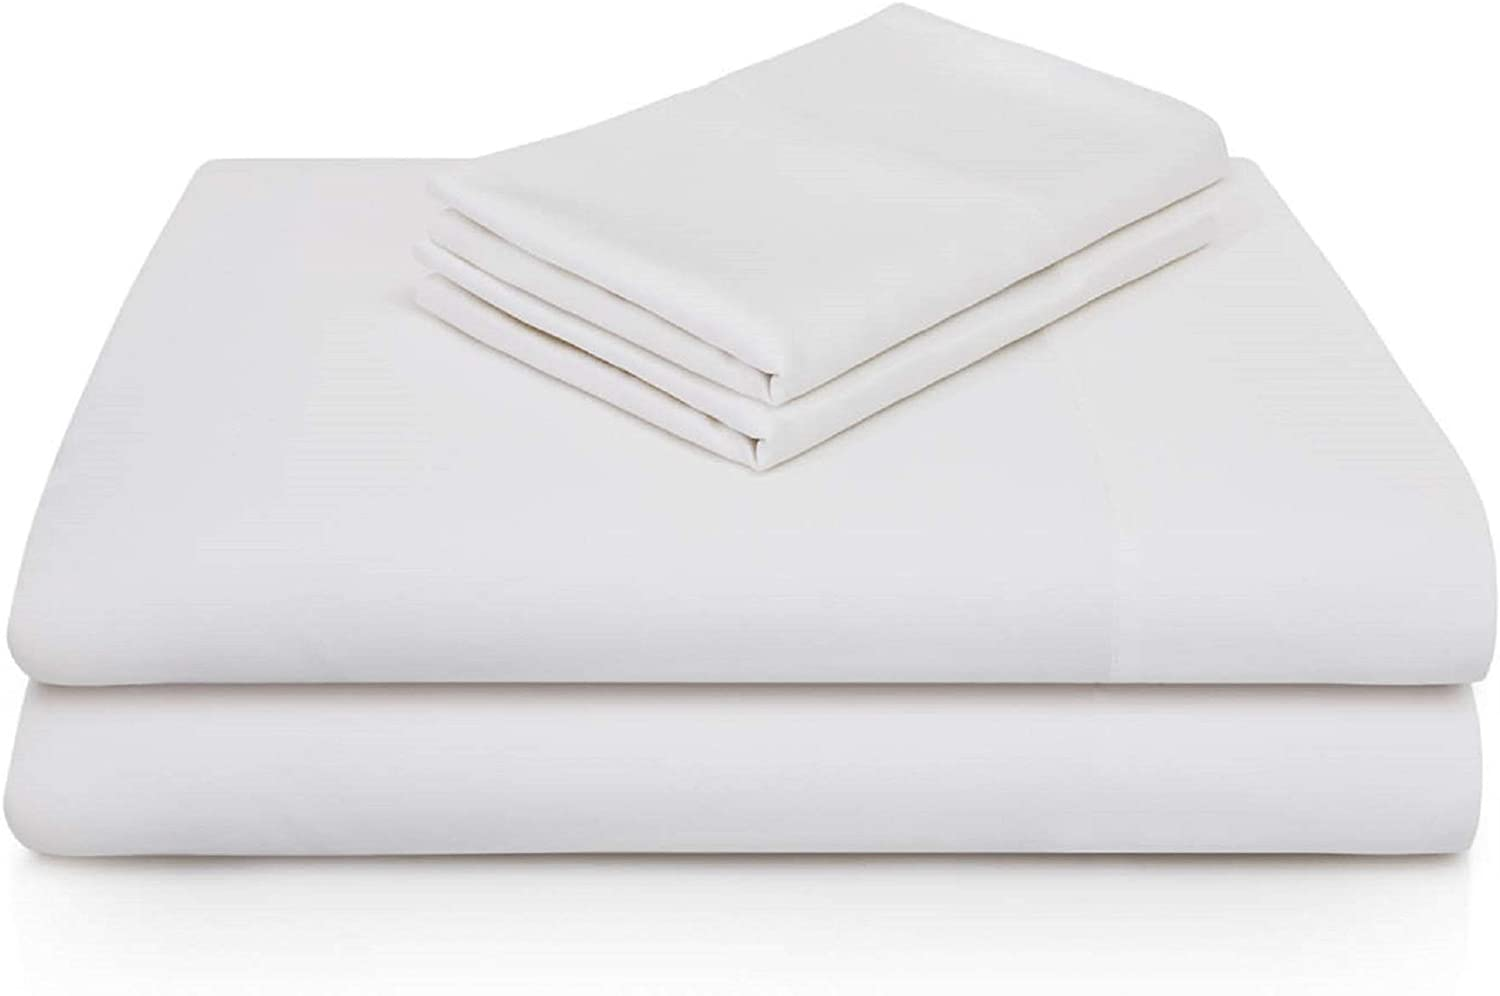 Woven Rayon from Bamboo 4 Piece Bed Sheet Set Breathable and Hypoallergenic